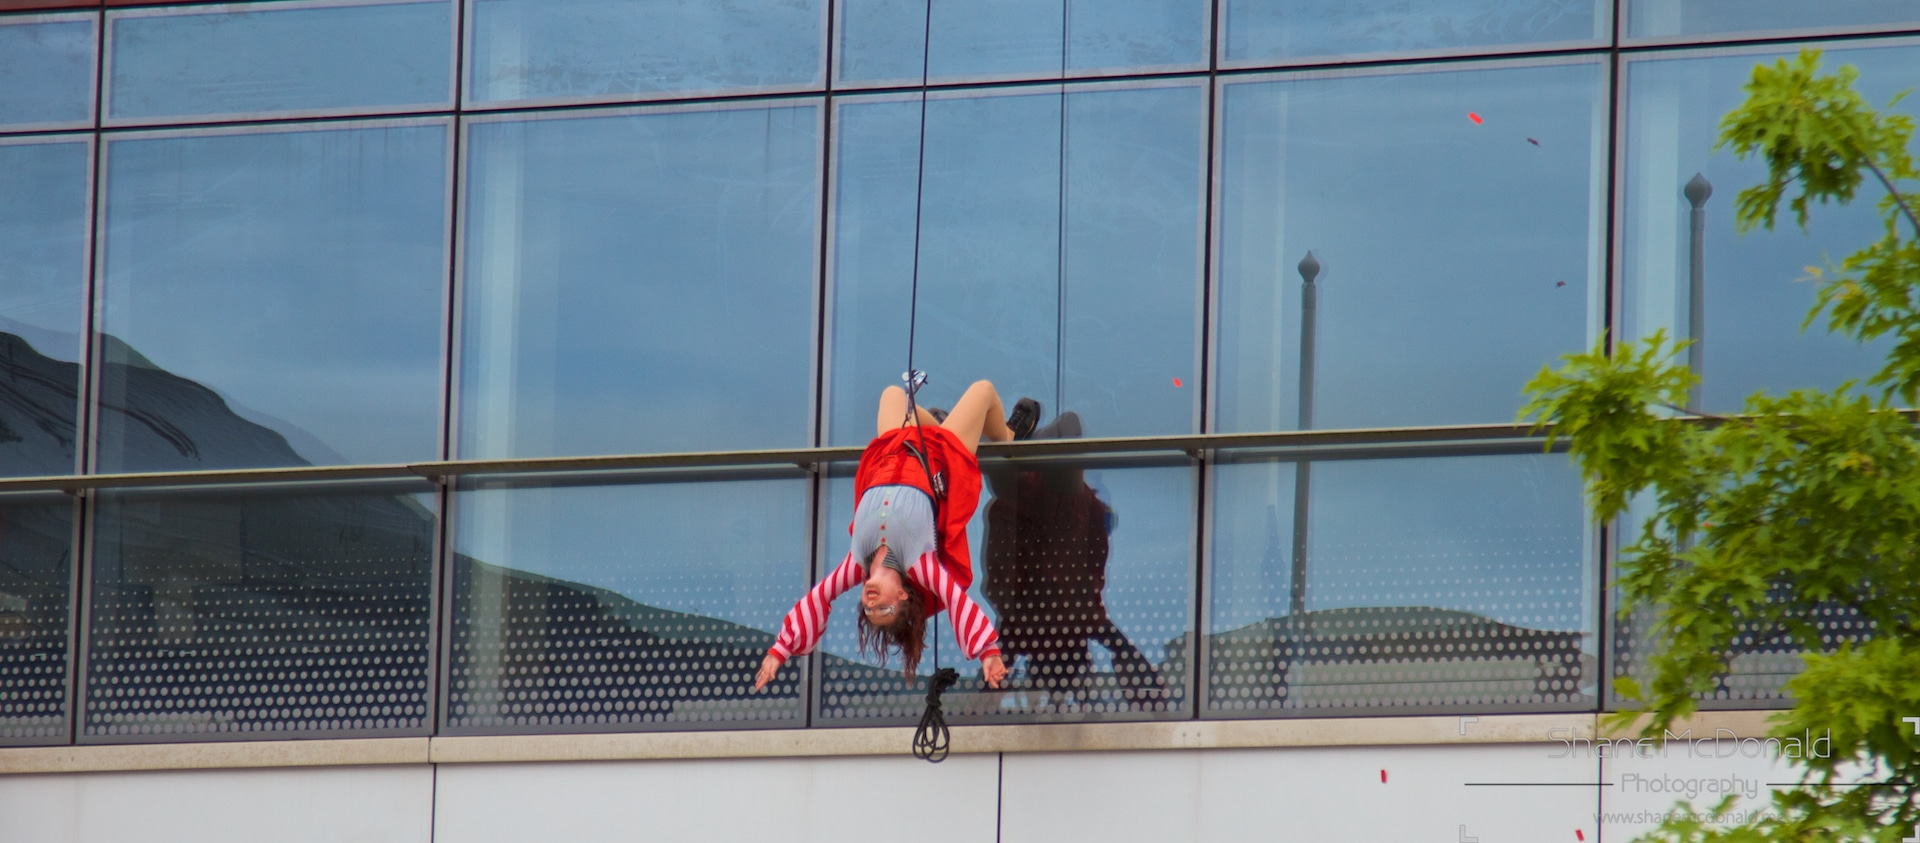 Urban Fly, walking on the front of the Waterford Crystal Building